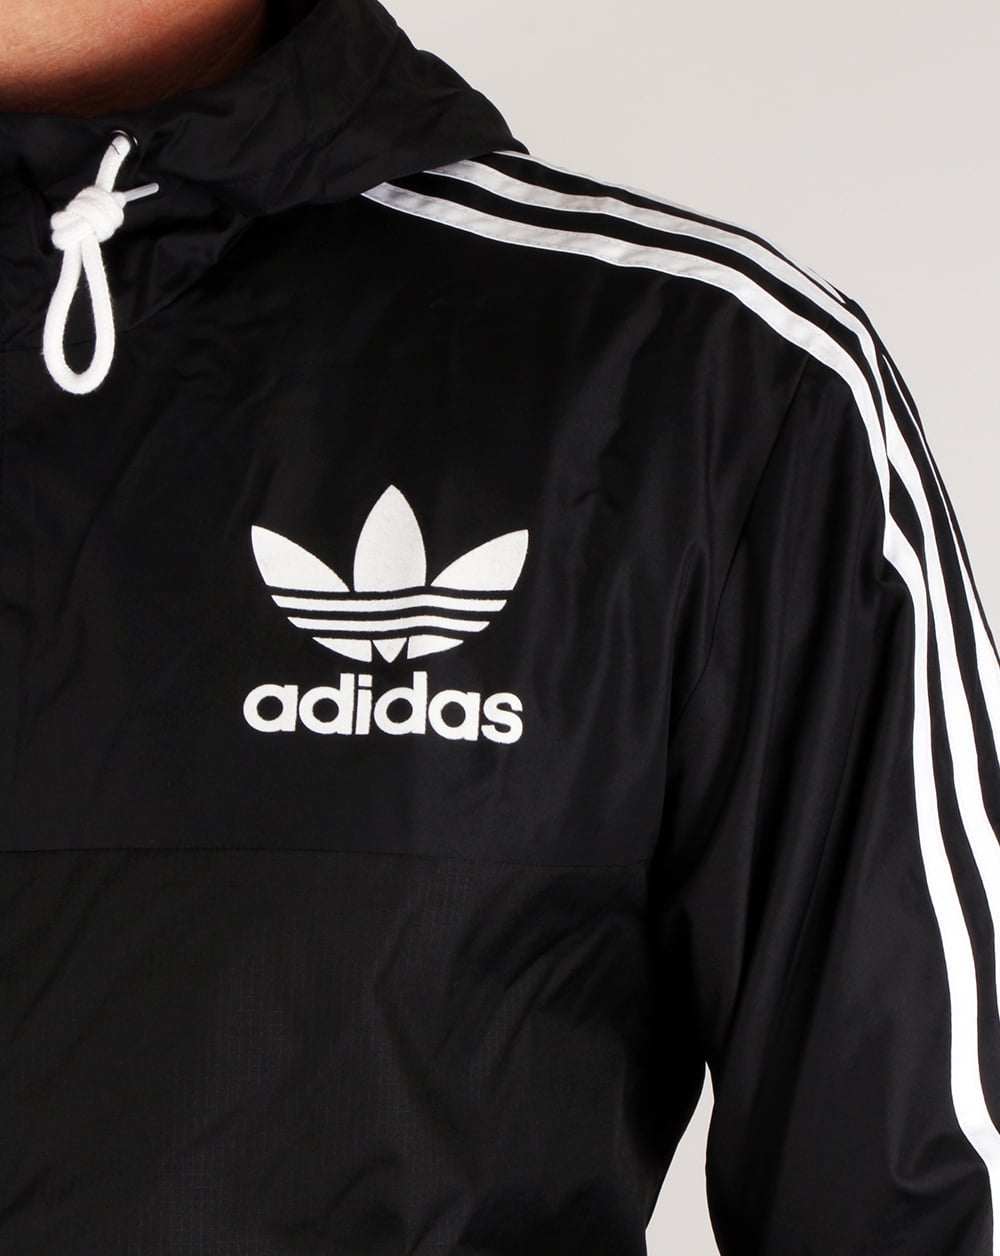 Adidas Originals California Windbreaker Black,jacket,coat,mens